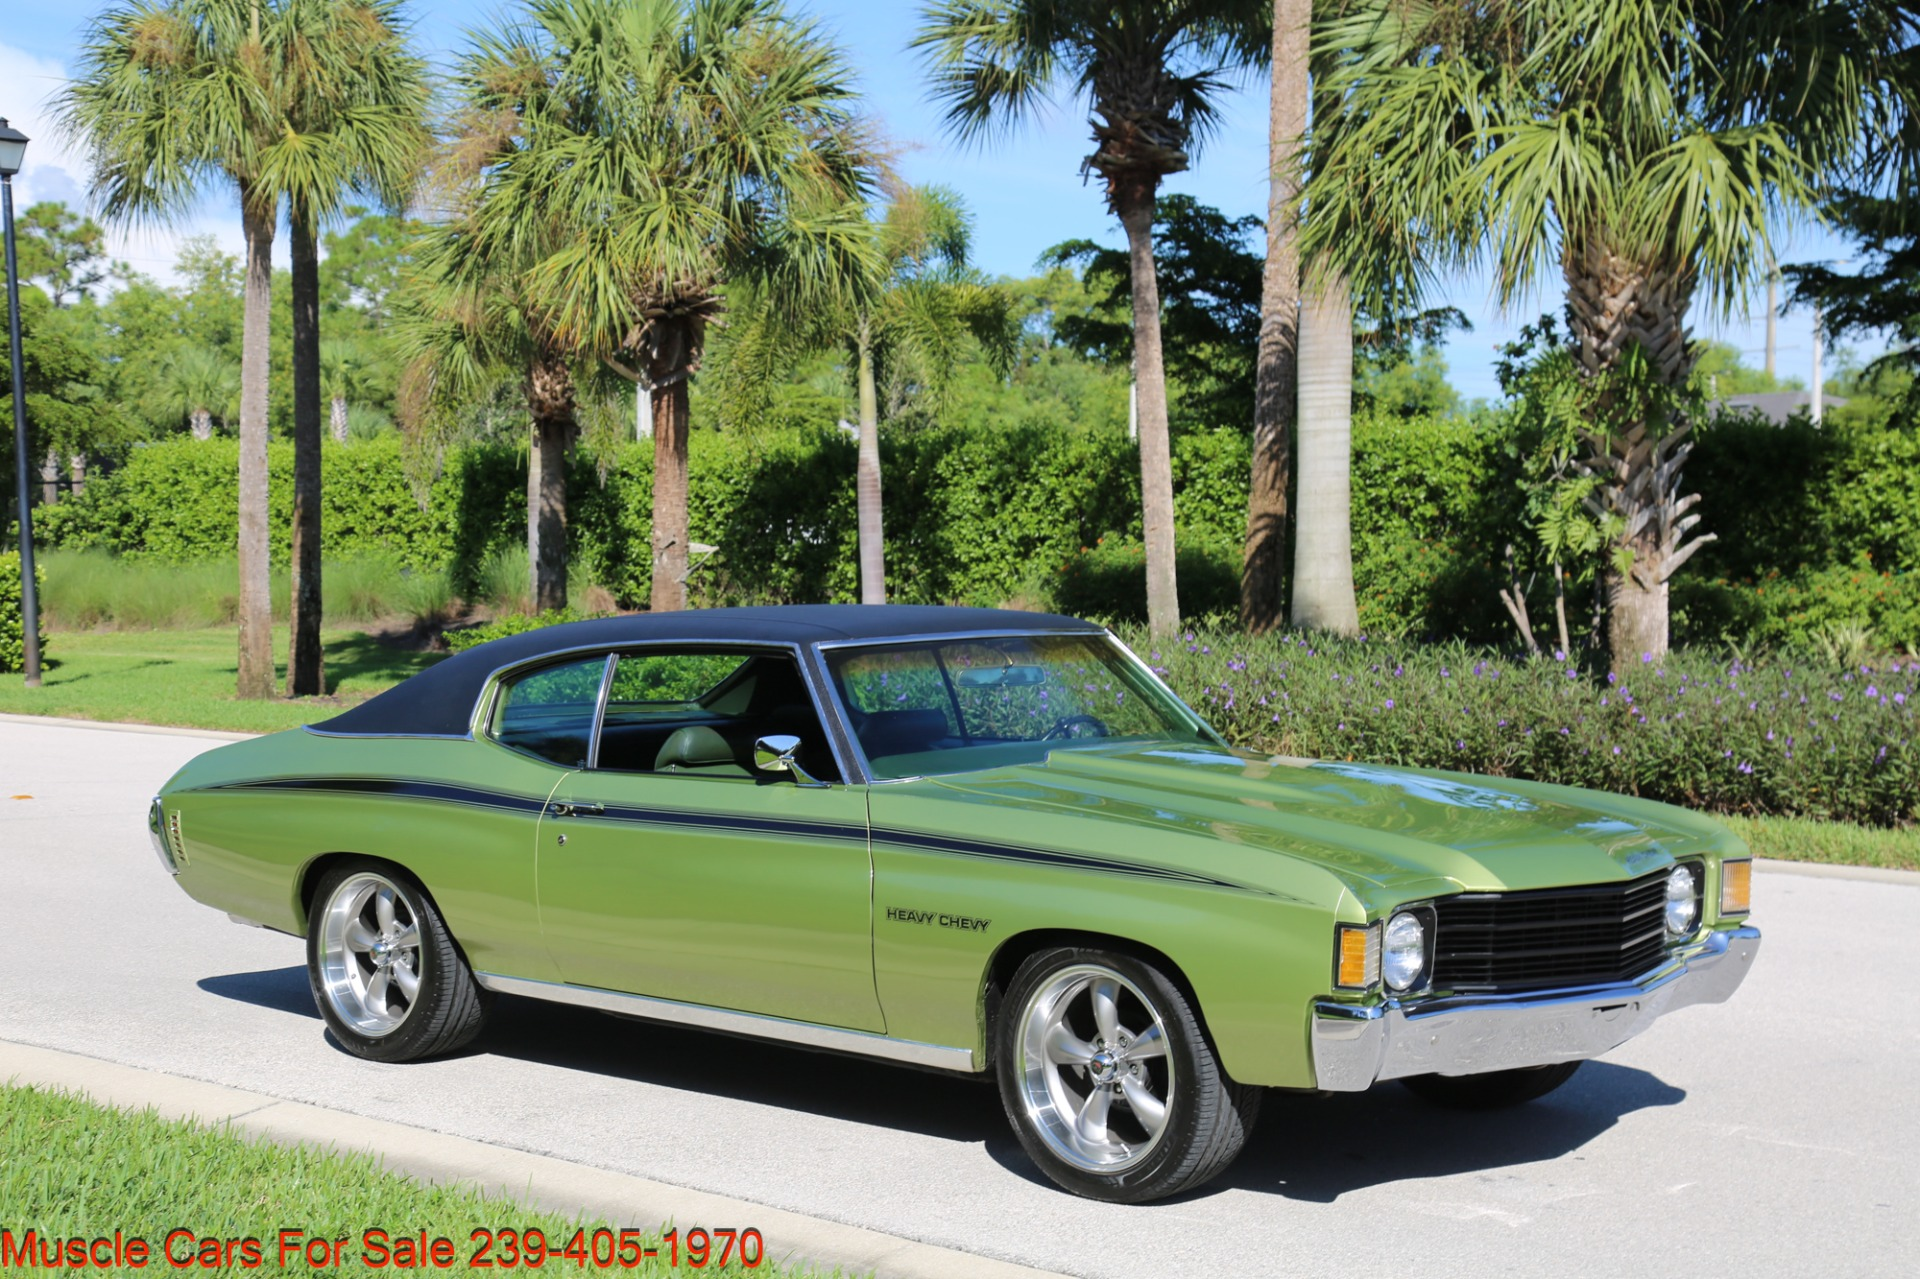 Used 1972 Chevrolet Chevelle Heavy Chevy Trim for sale $34,000 at Muscle Cars for Sale Inc. in Fort Myers FL 33912 4